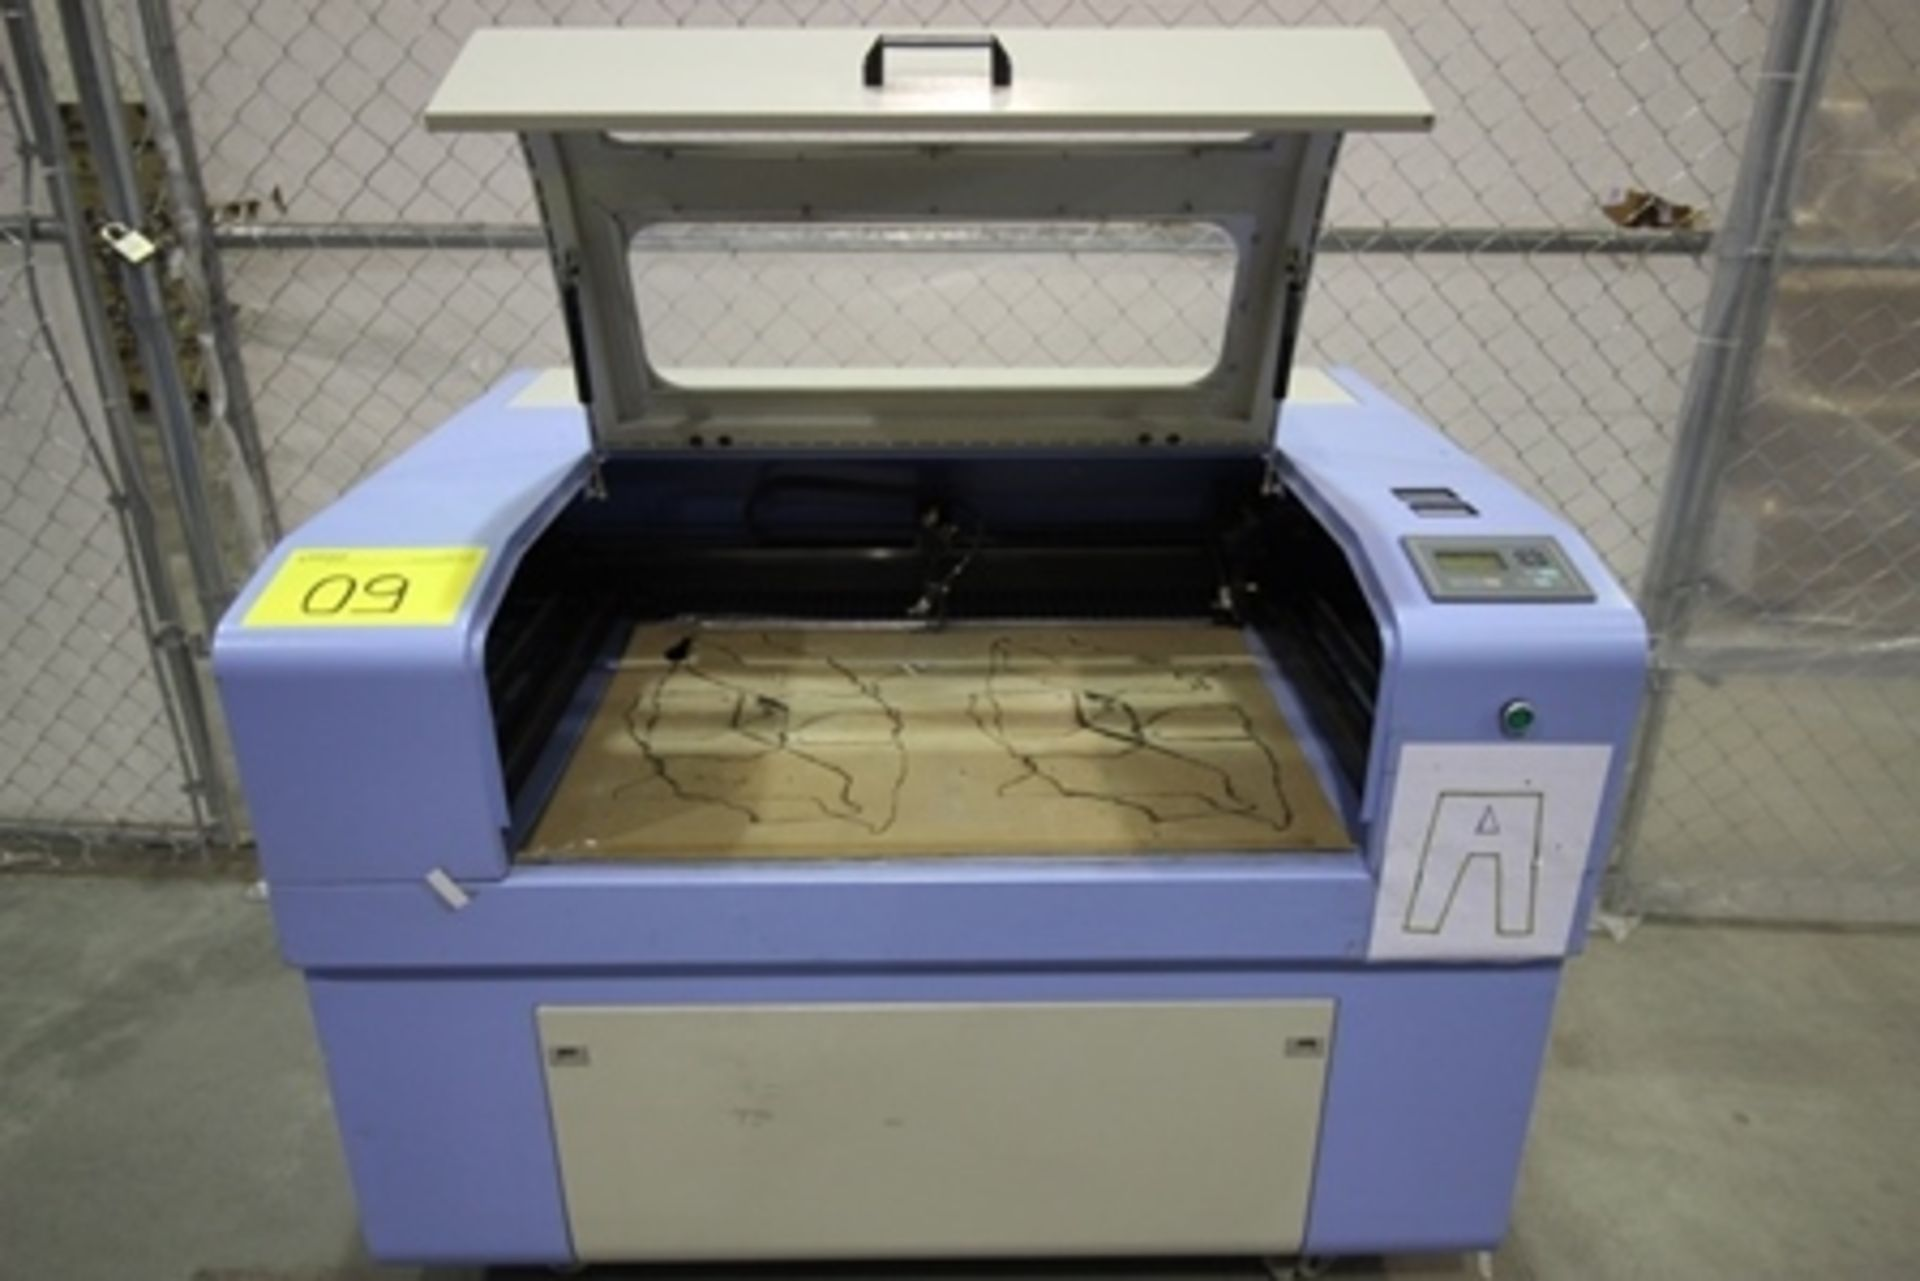 Lot 9 - 2017 Phillican CO2 laser engraver and cutting machine, model 6090.